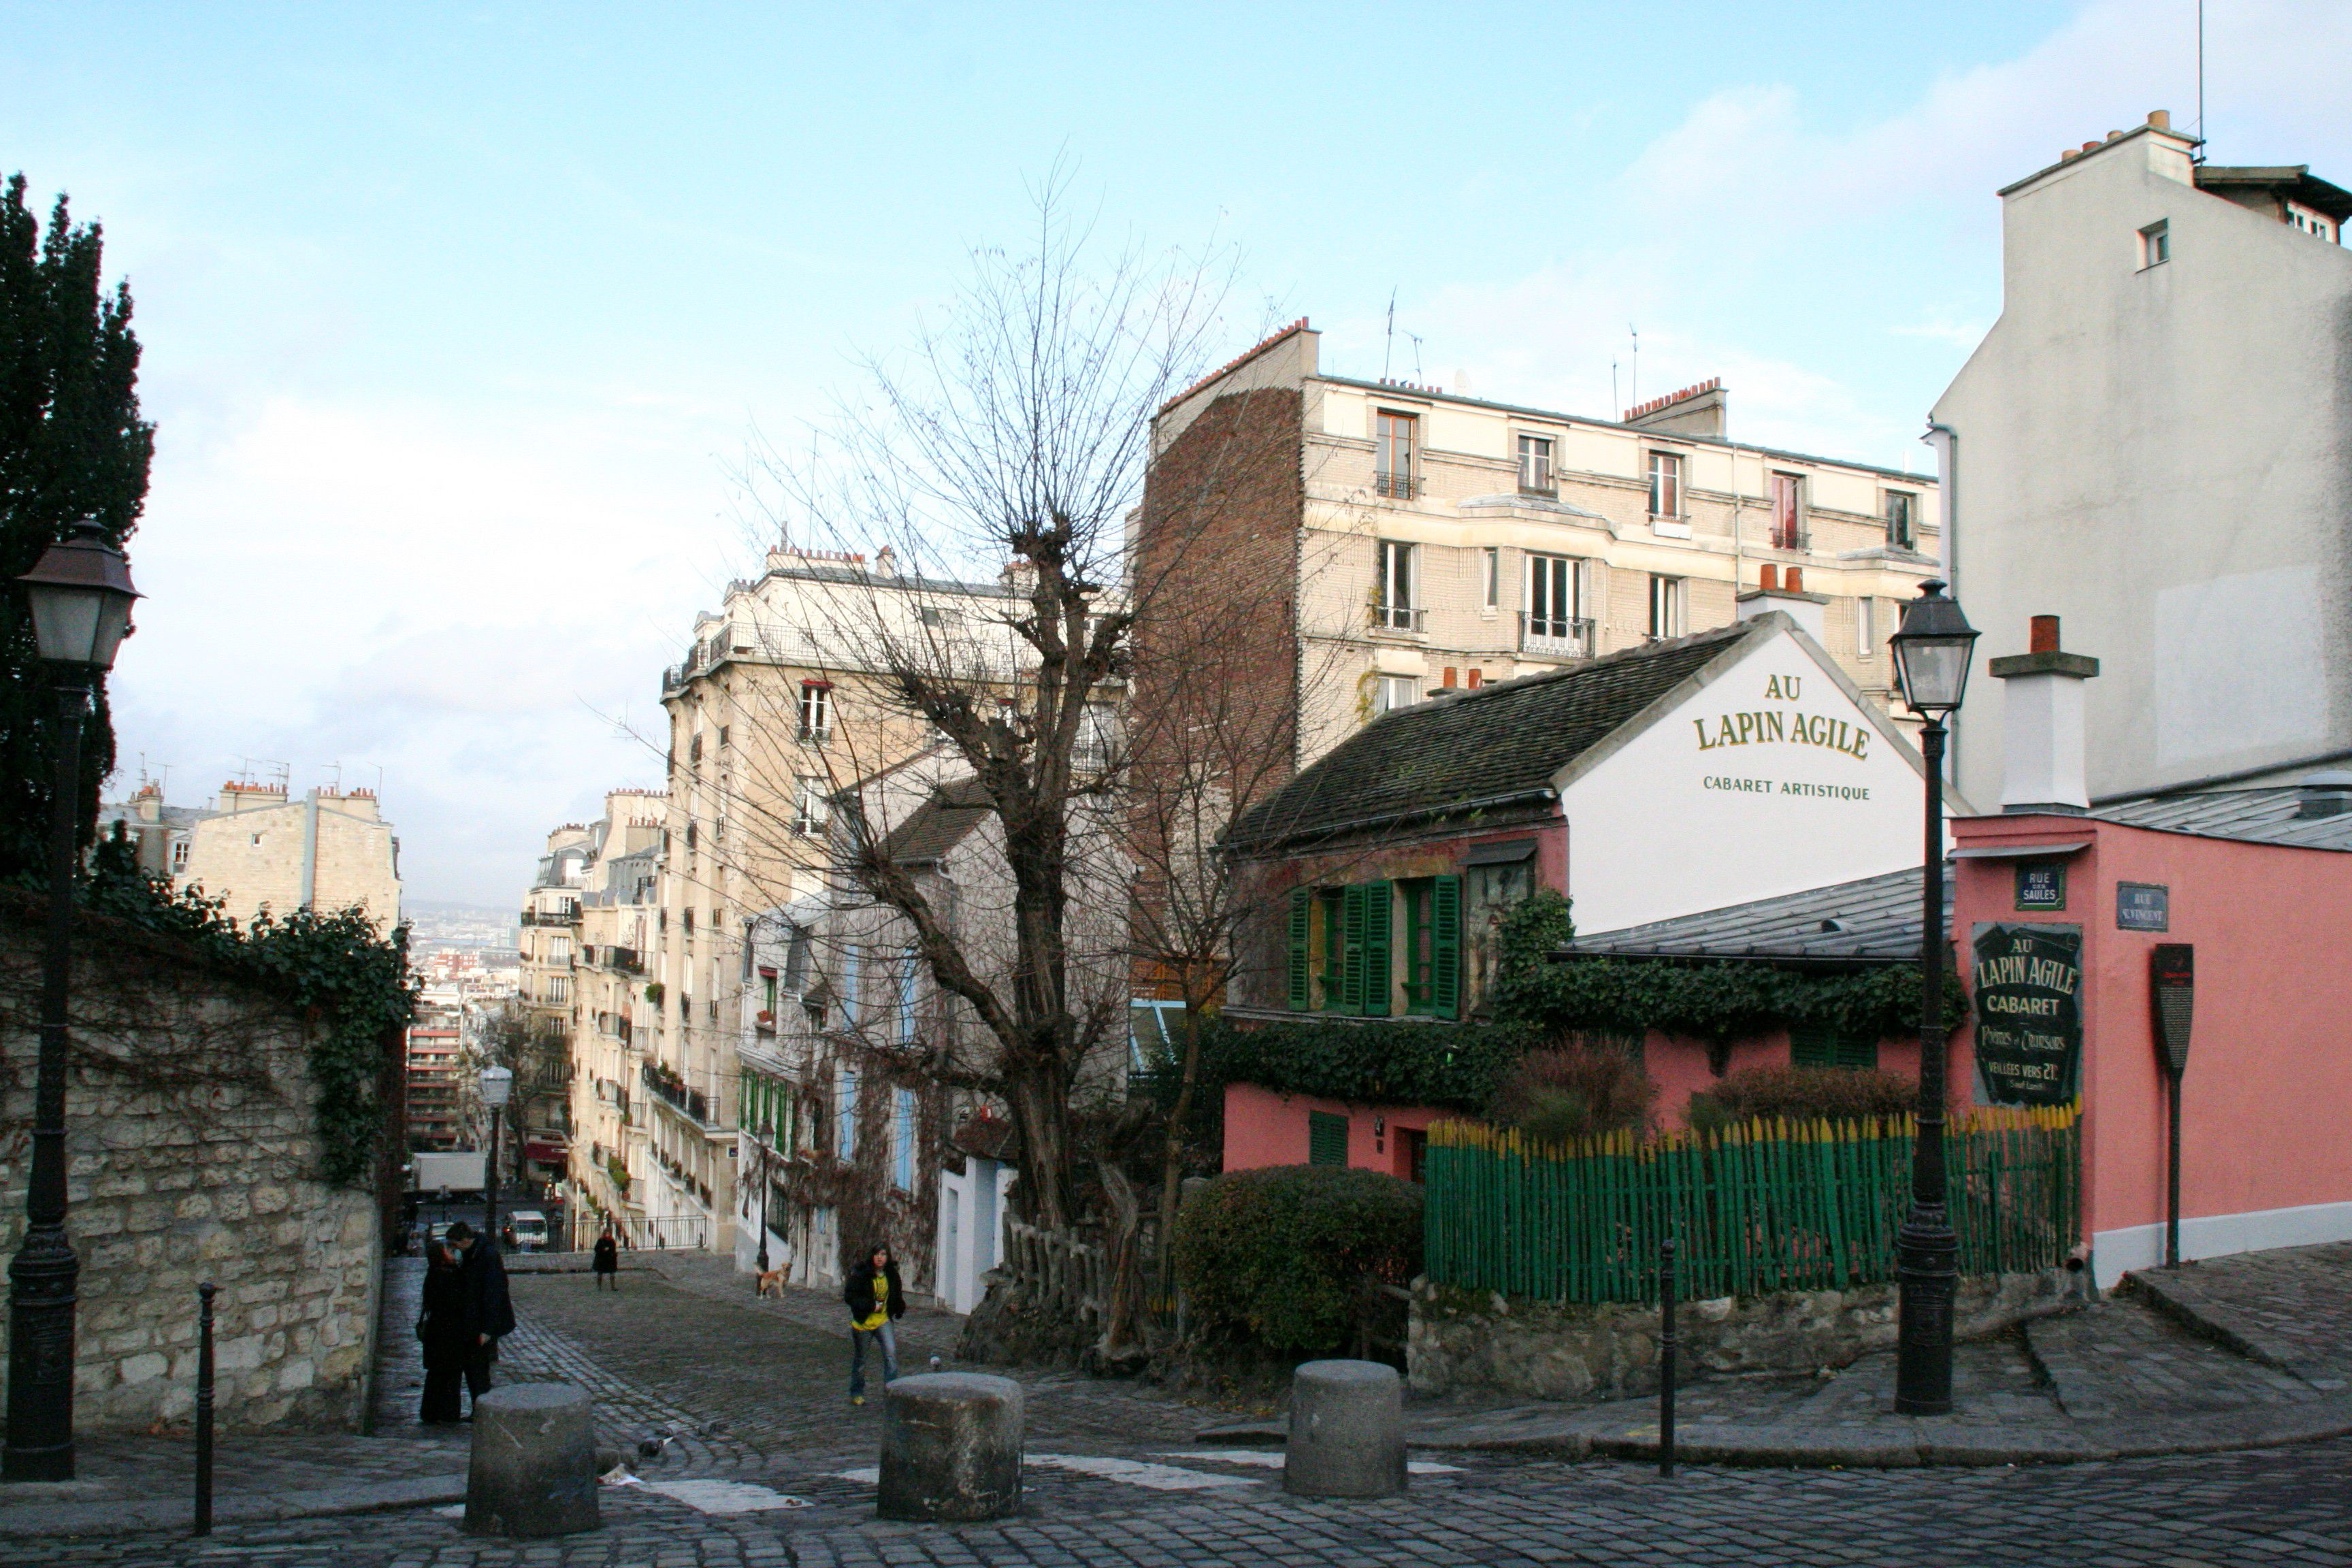 Au Lapin Agile as seen from Montmartre.